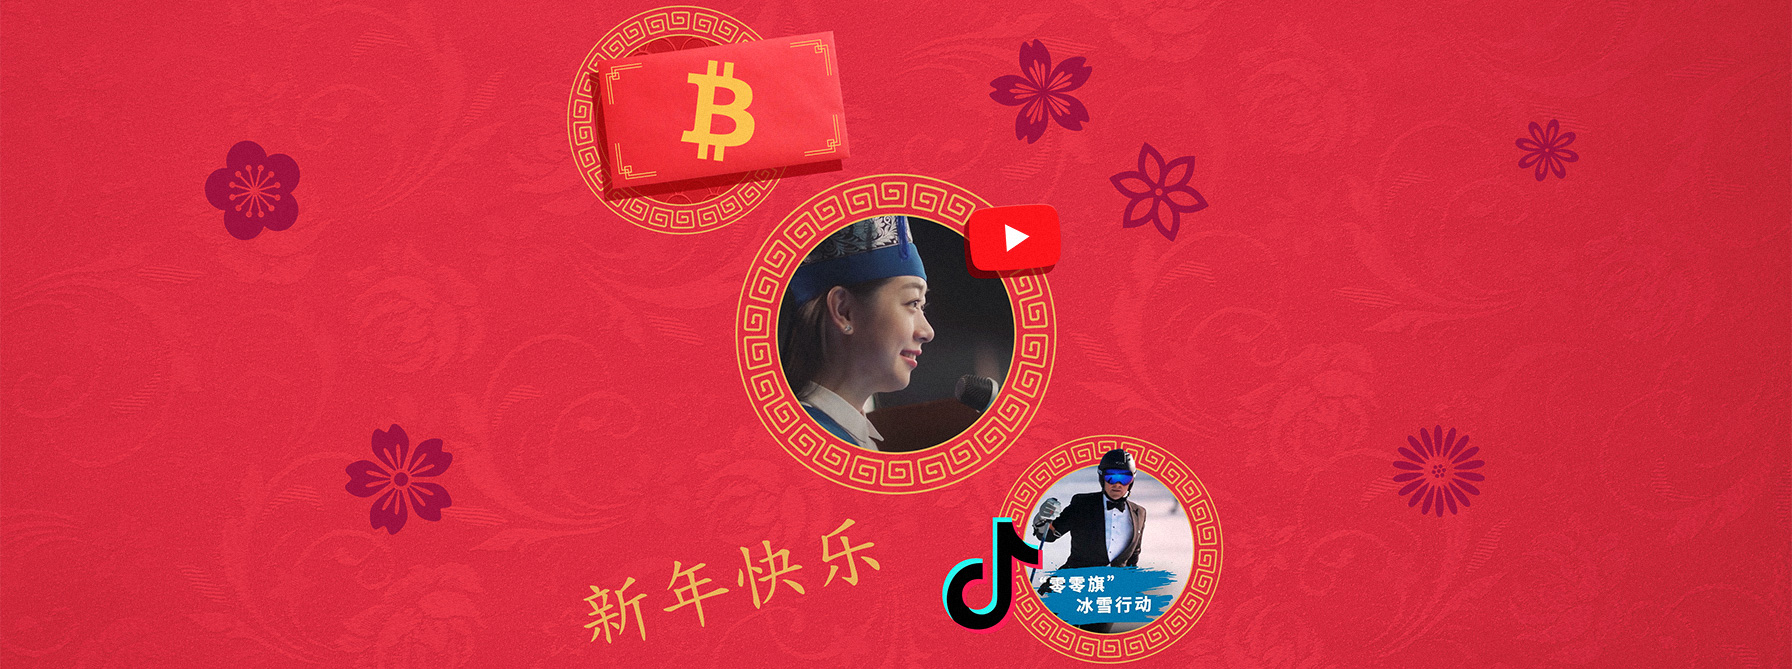 Chinese New Year - the year of the finance brand